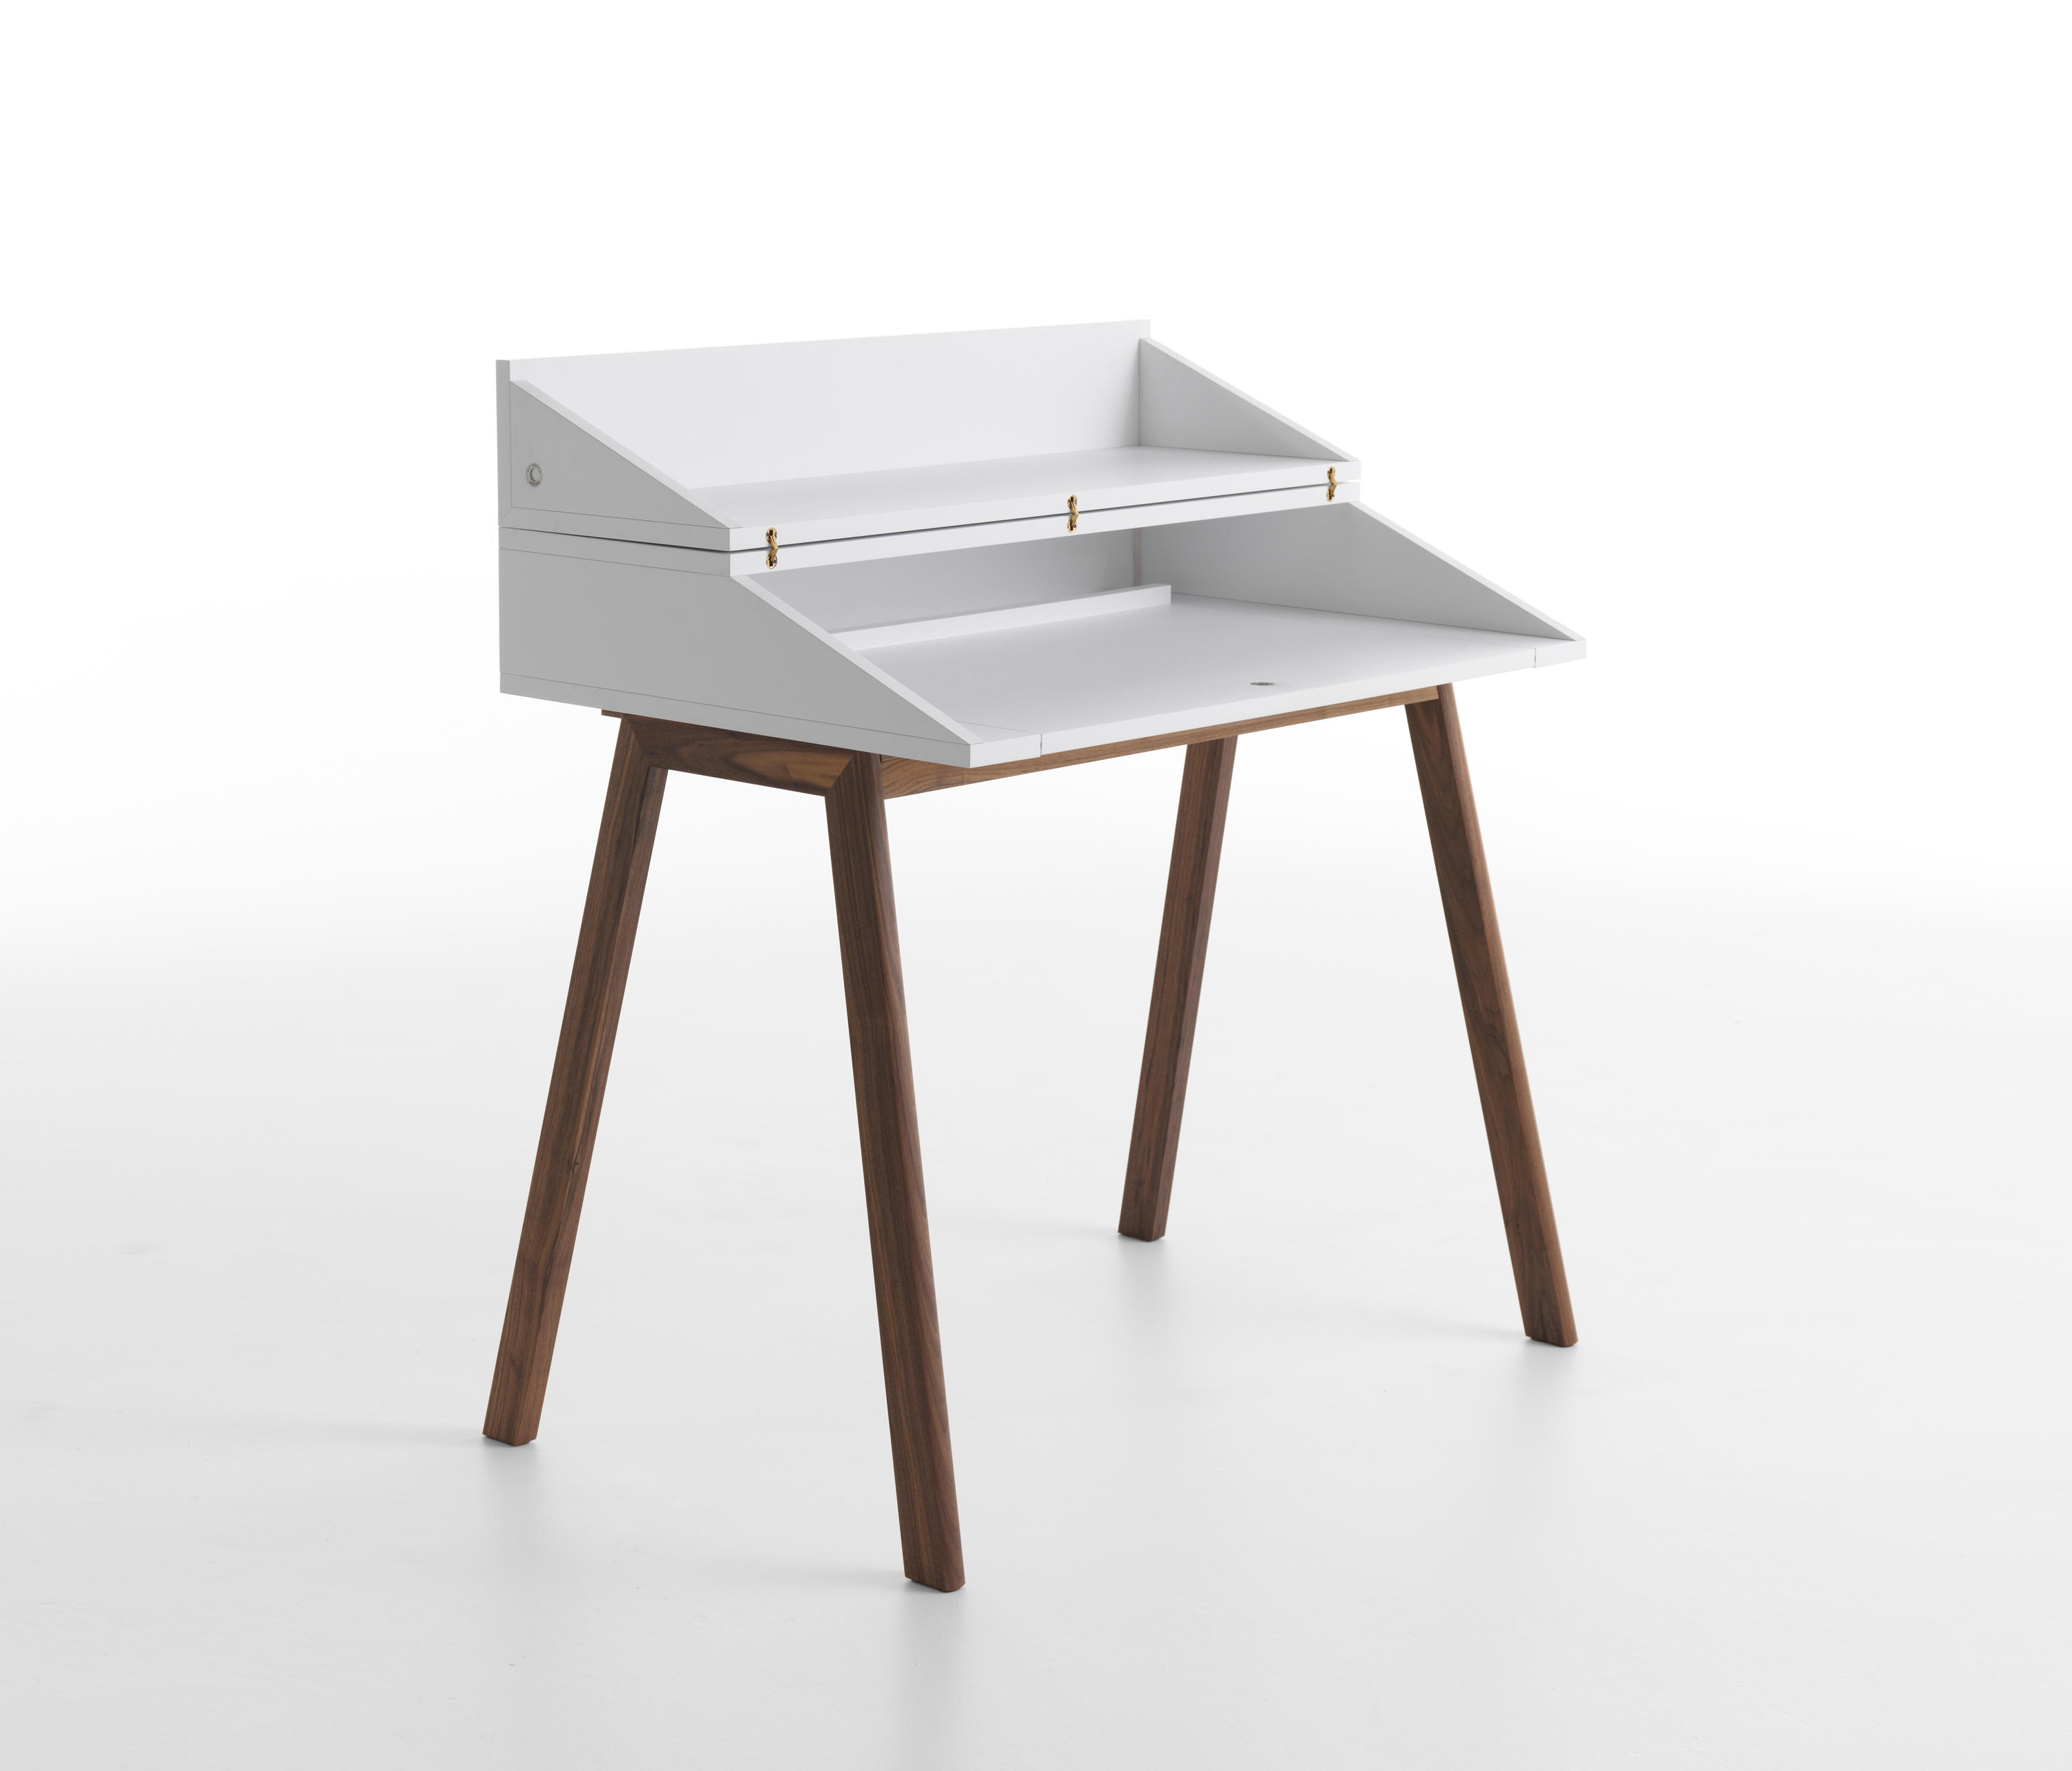 Bureau desk scrittoi casamania horm it architonic for Bureau 04 peipin